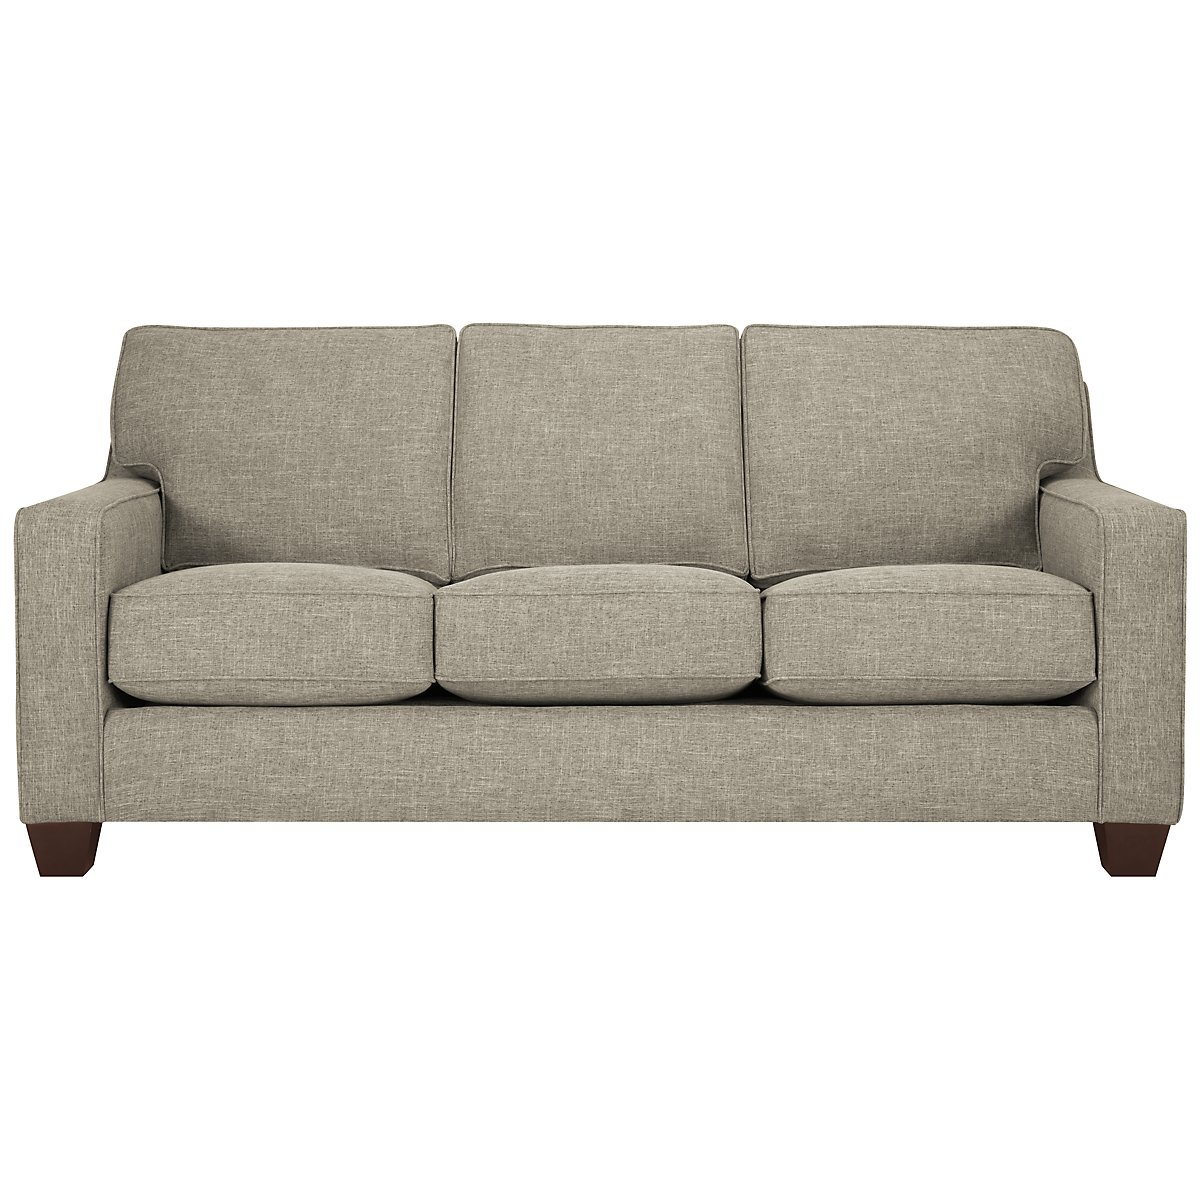 York Pewter Fabric Sofa